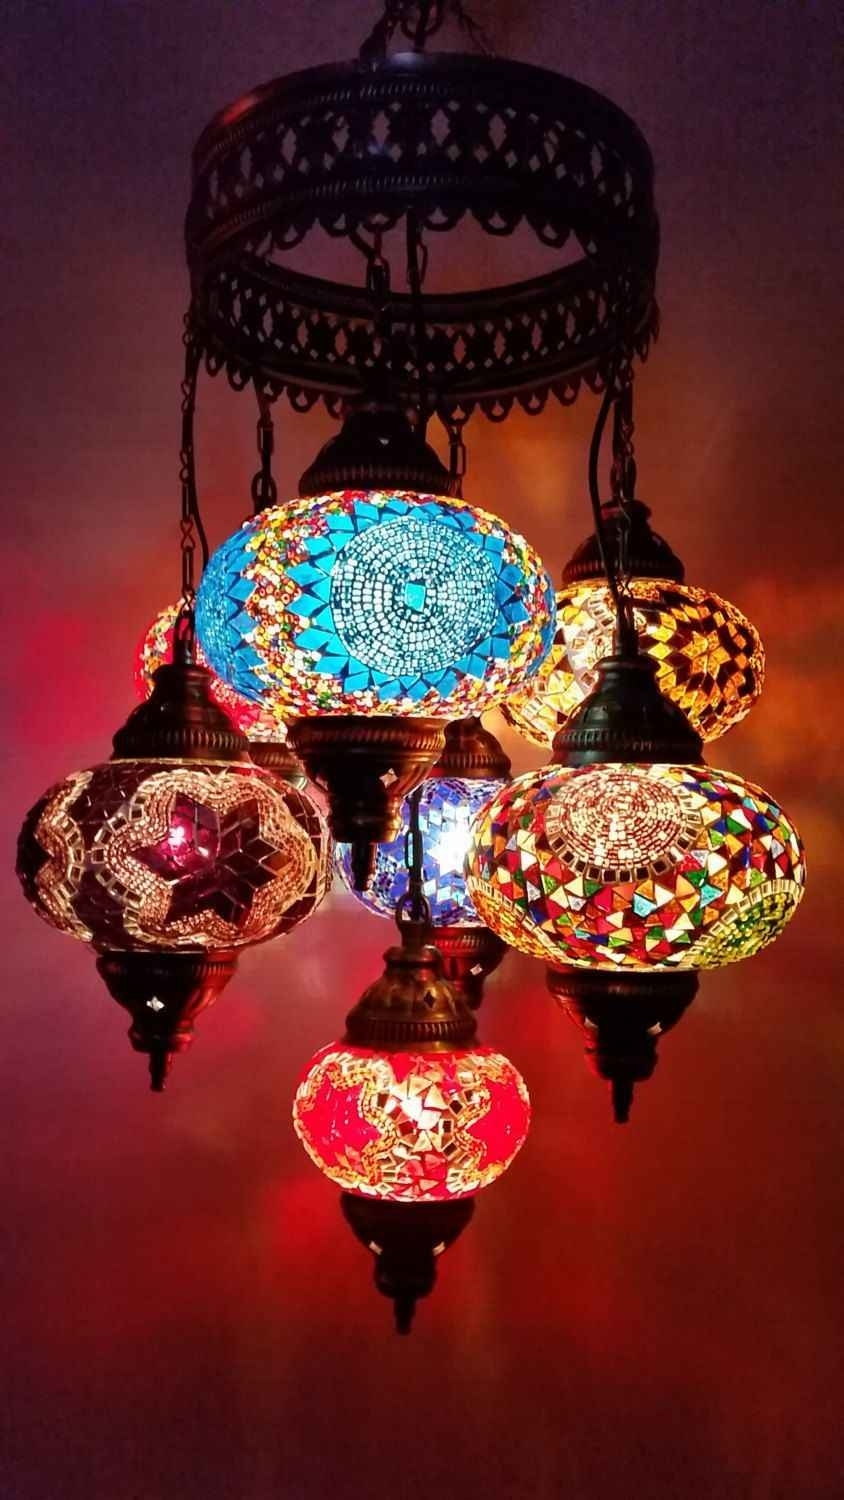 Multicolor Handmade 7 Balls Moroccan Mosaic Hanging Lamp Lantern Inside Outdoor Mosaic Lanterns (View 15 of 20)